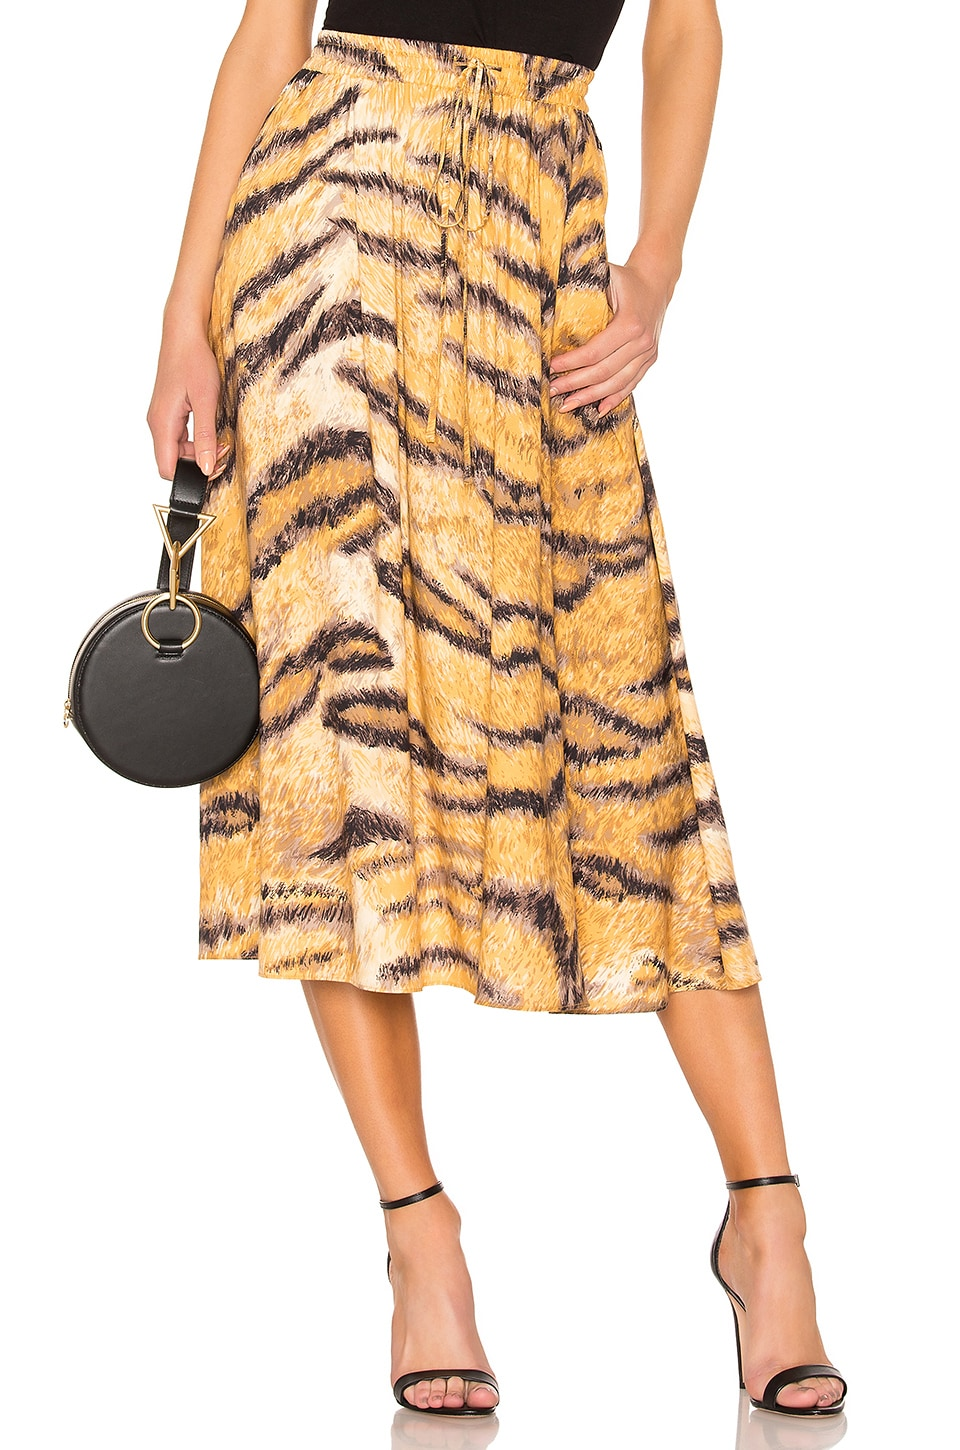 Hofmann Copenhagen Belle Skirt in Golden Hour Print